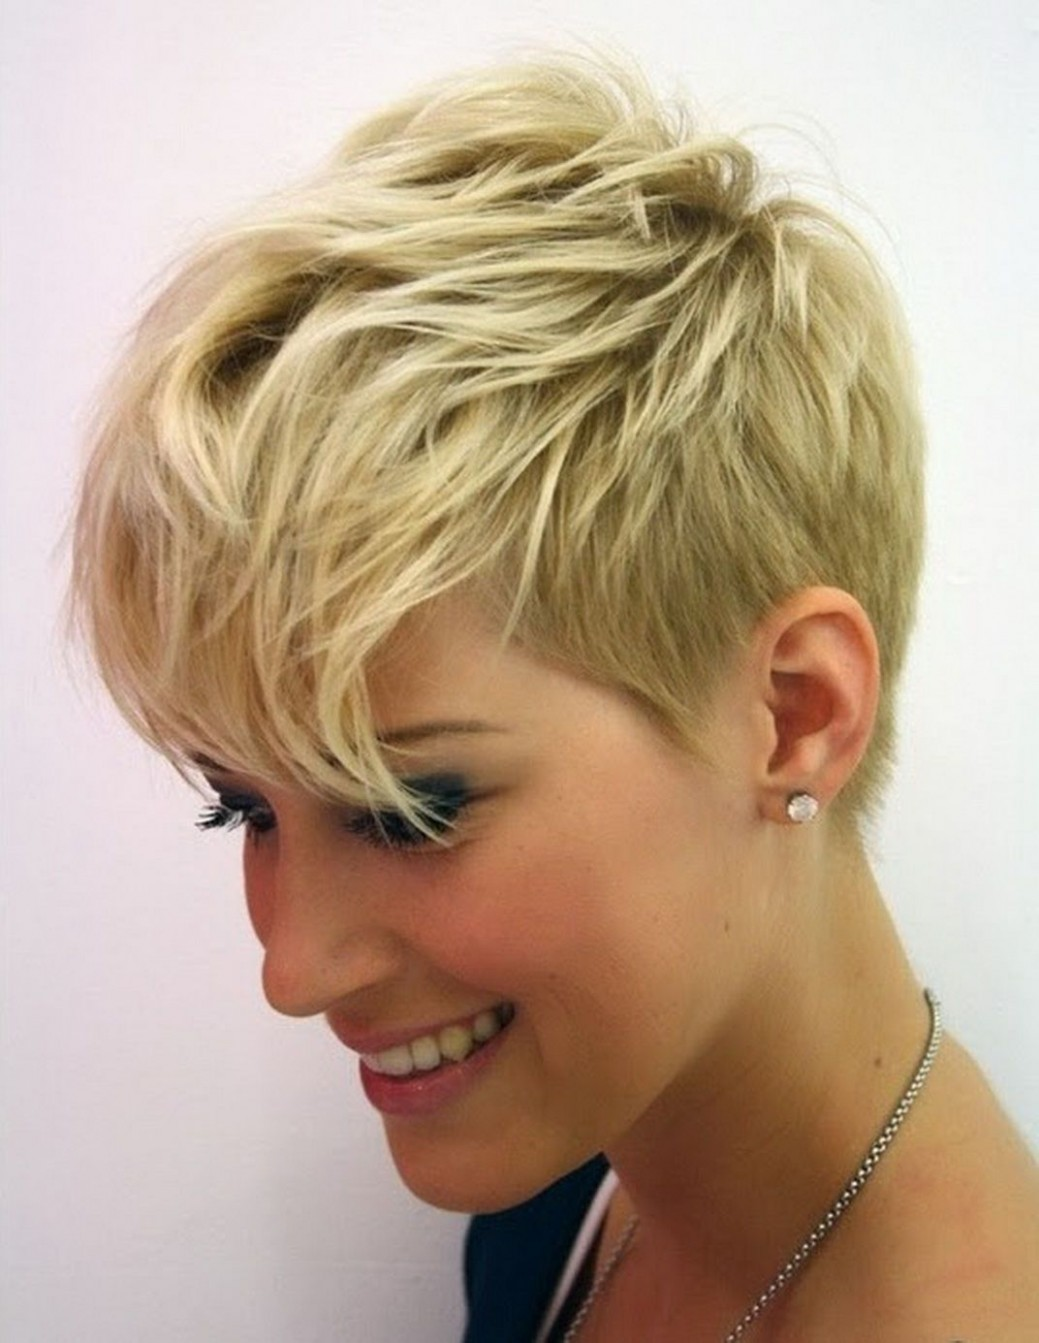 Pin On Hair Pixie Cut For Heart Shaped Face